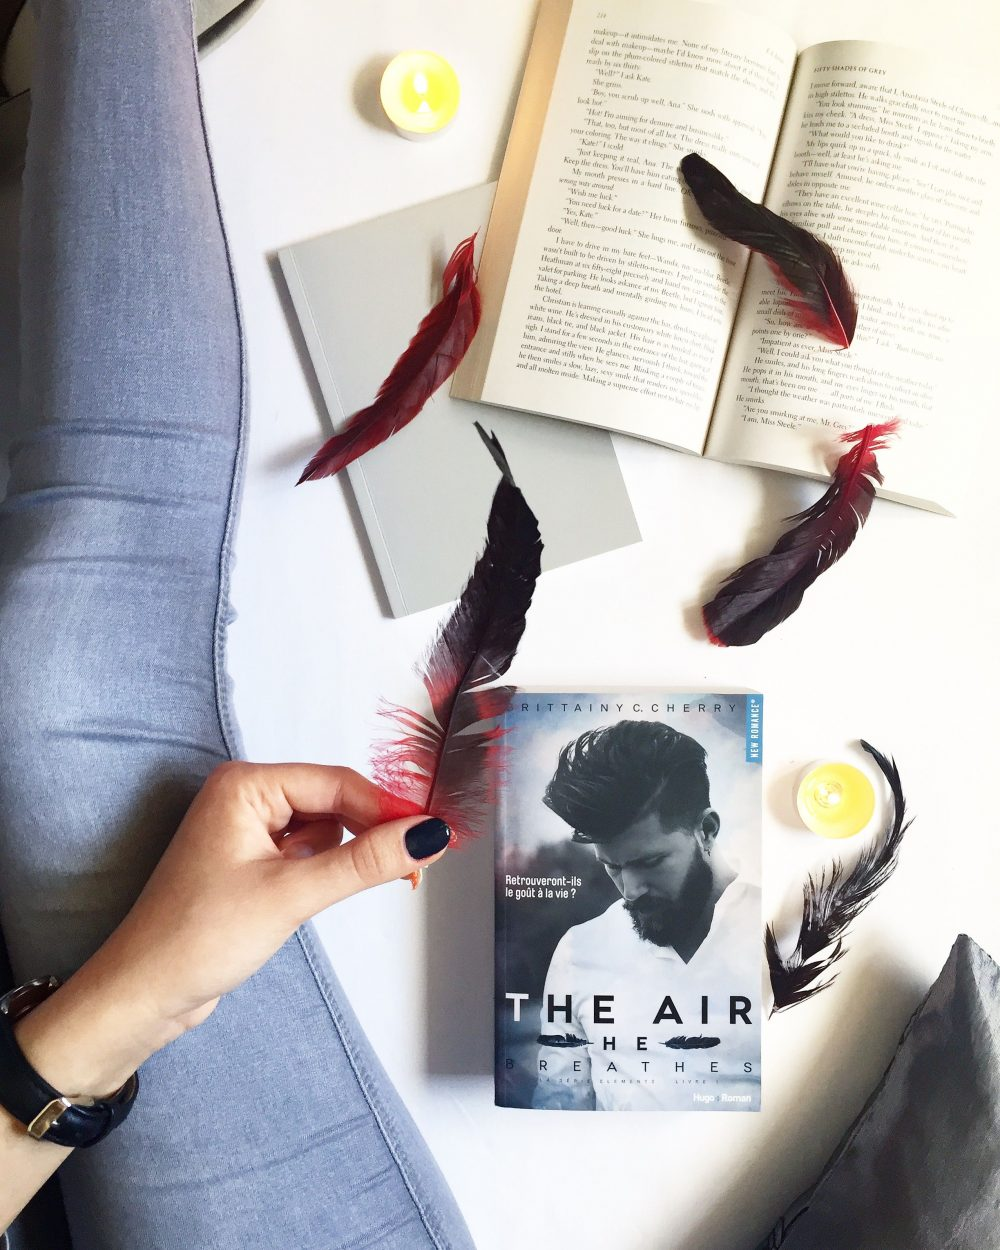 The Air - He Breathes Série Elements de Brittainy C. Cherry - Aliastasia - livre